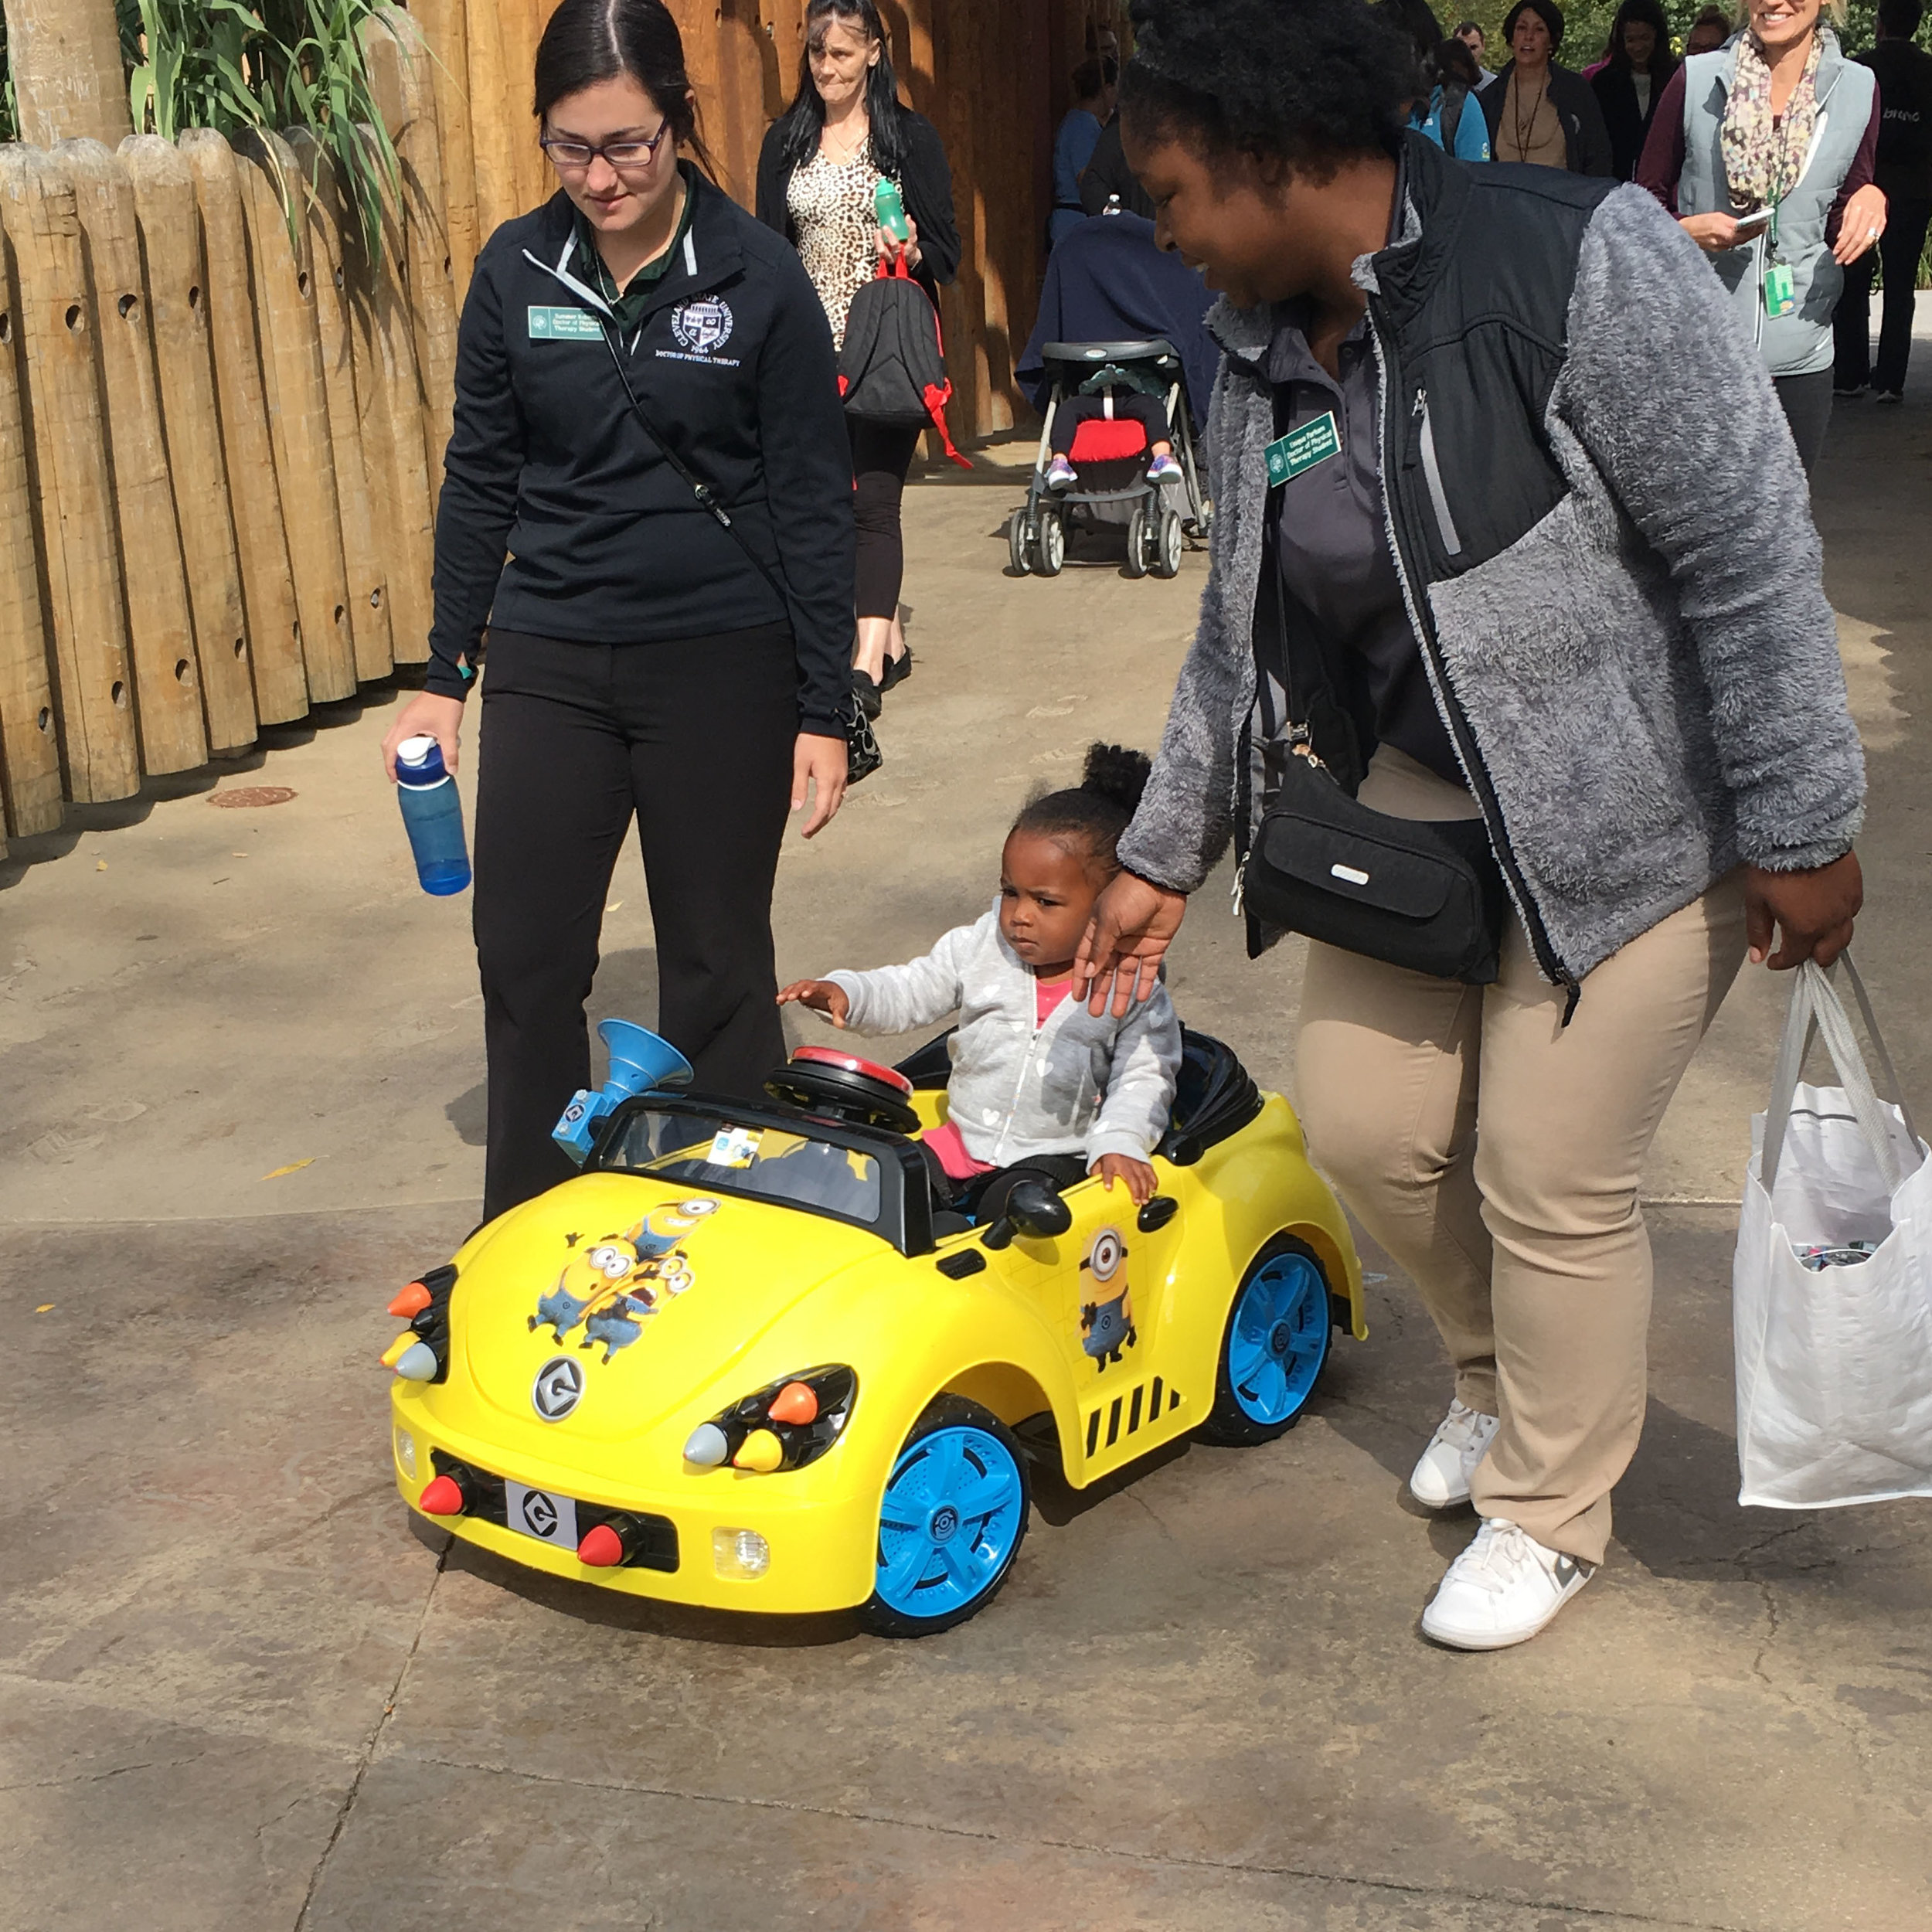 child_in_GBG_car_at_Zoo.jpg